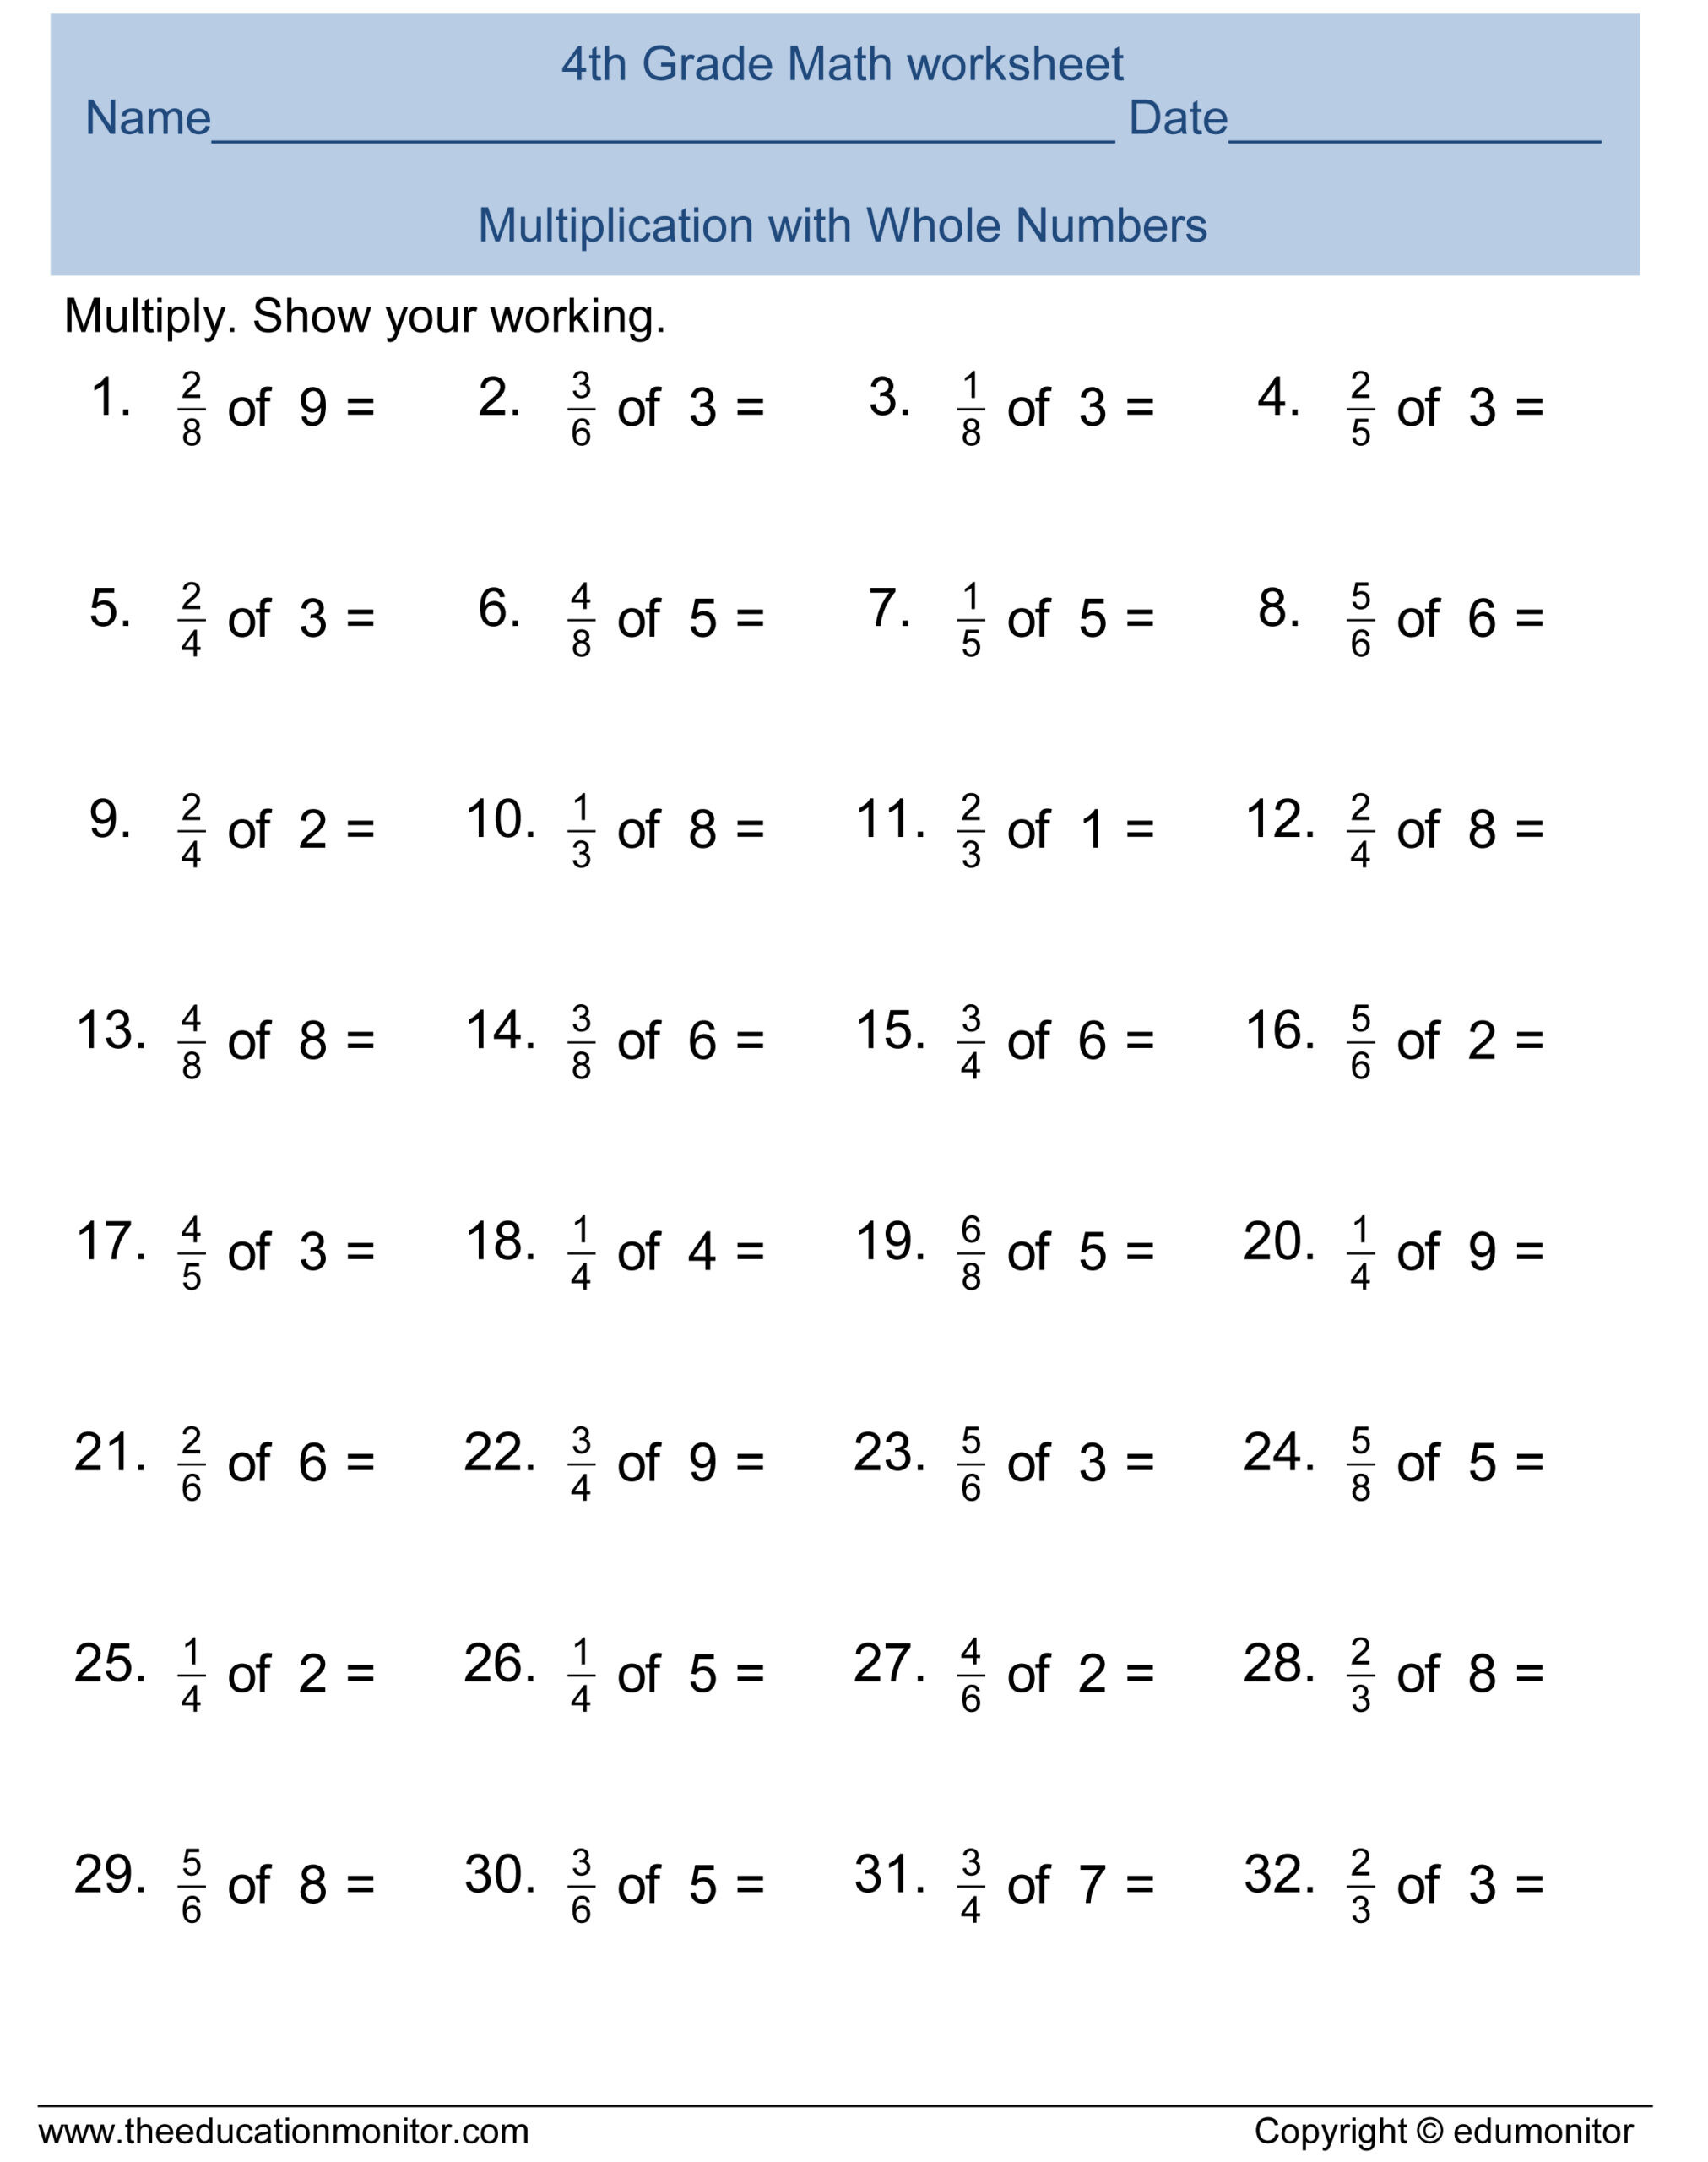 4th Grade Abeka Math Worksheets Free 4th Grade Fractions Math Worksheets and Printables